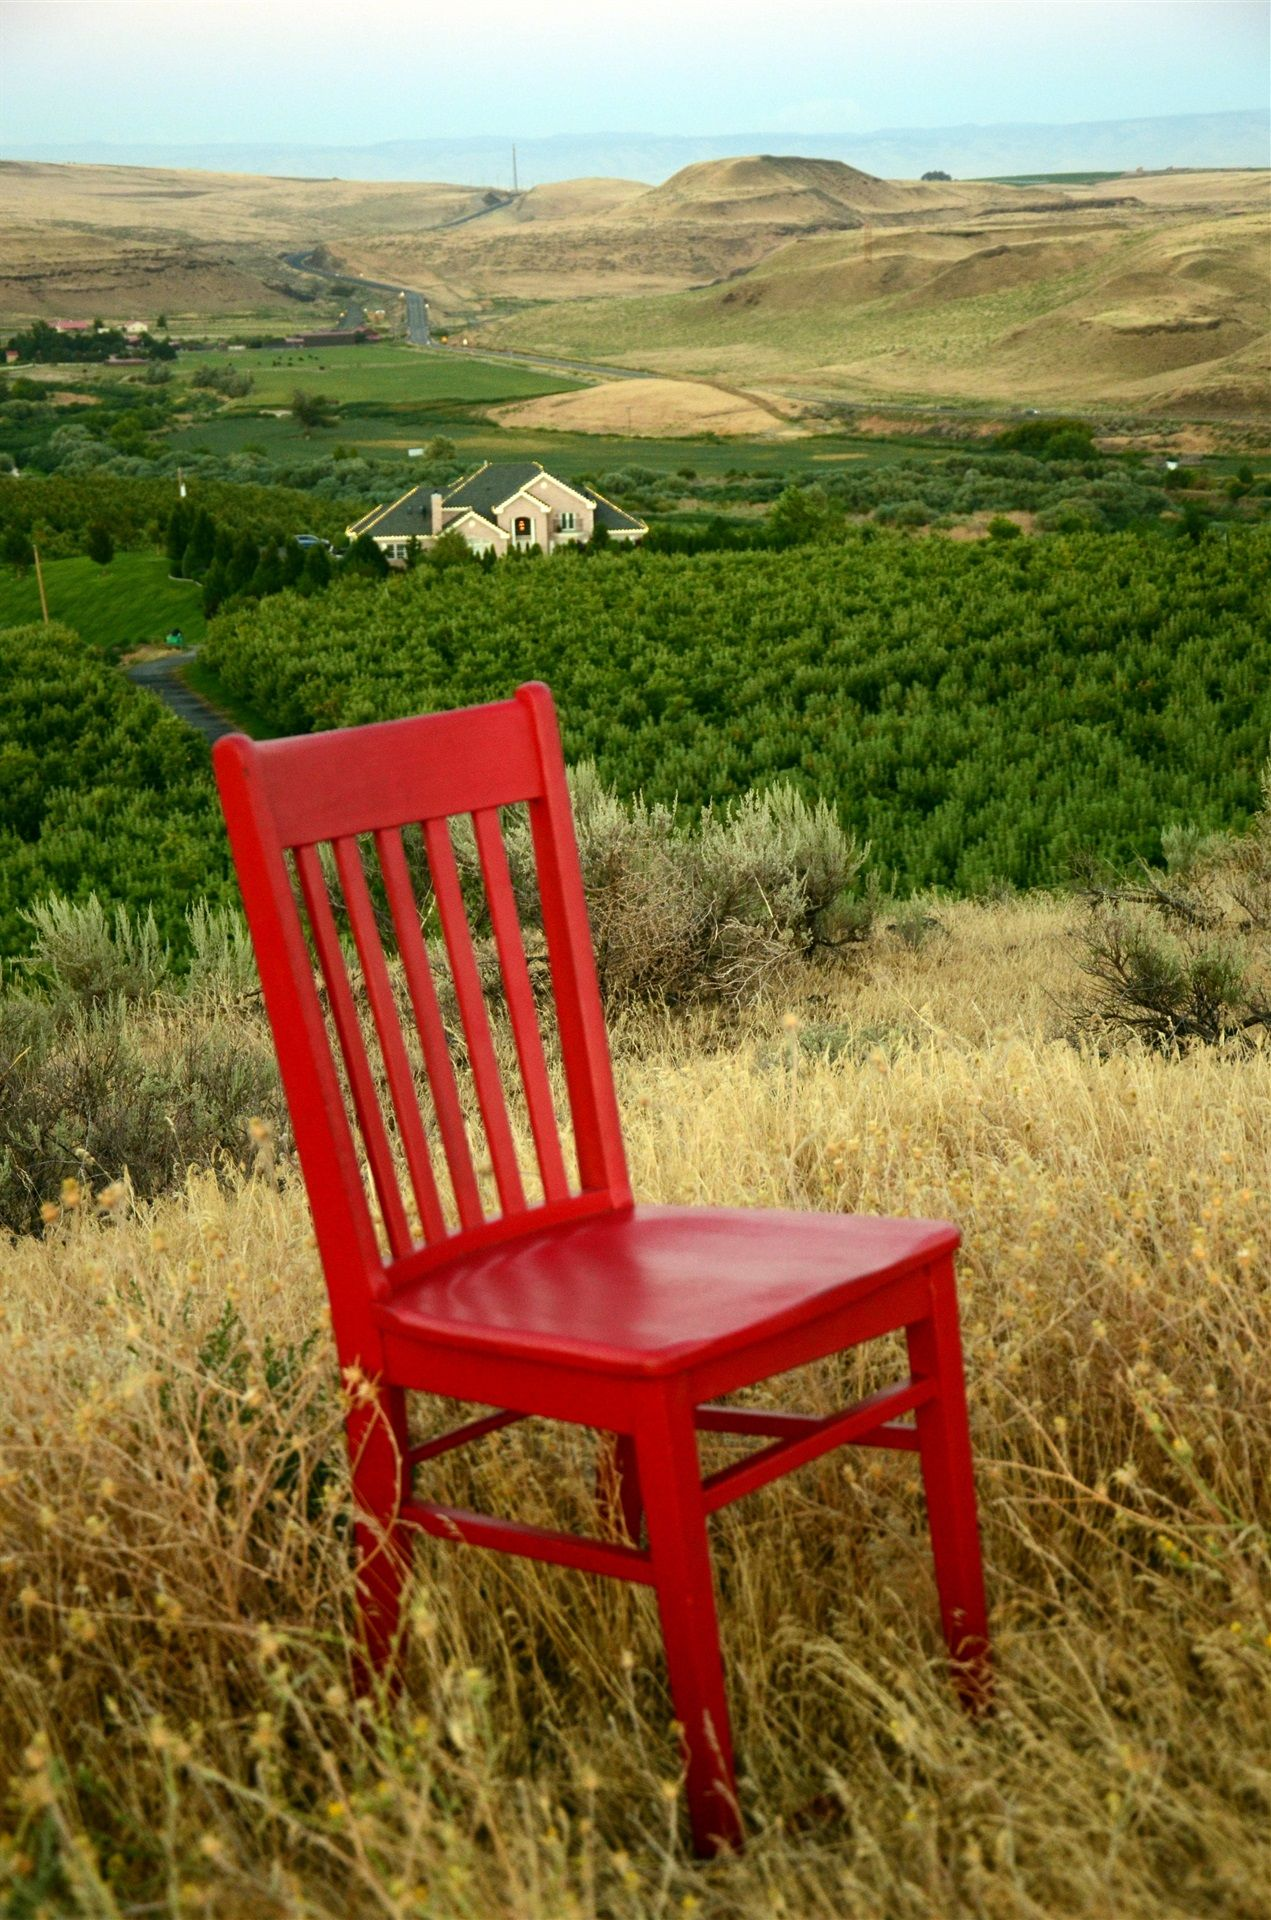 Red chair in a field with the Mansion and forested area around it in the background